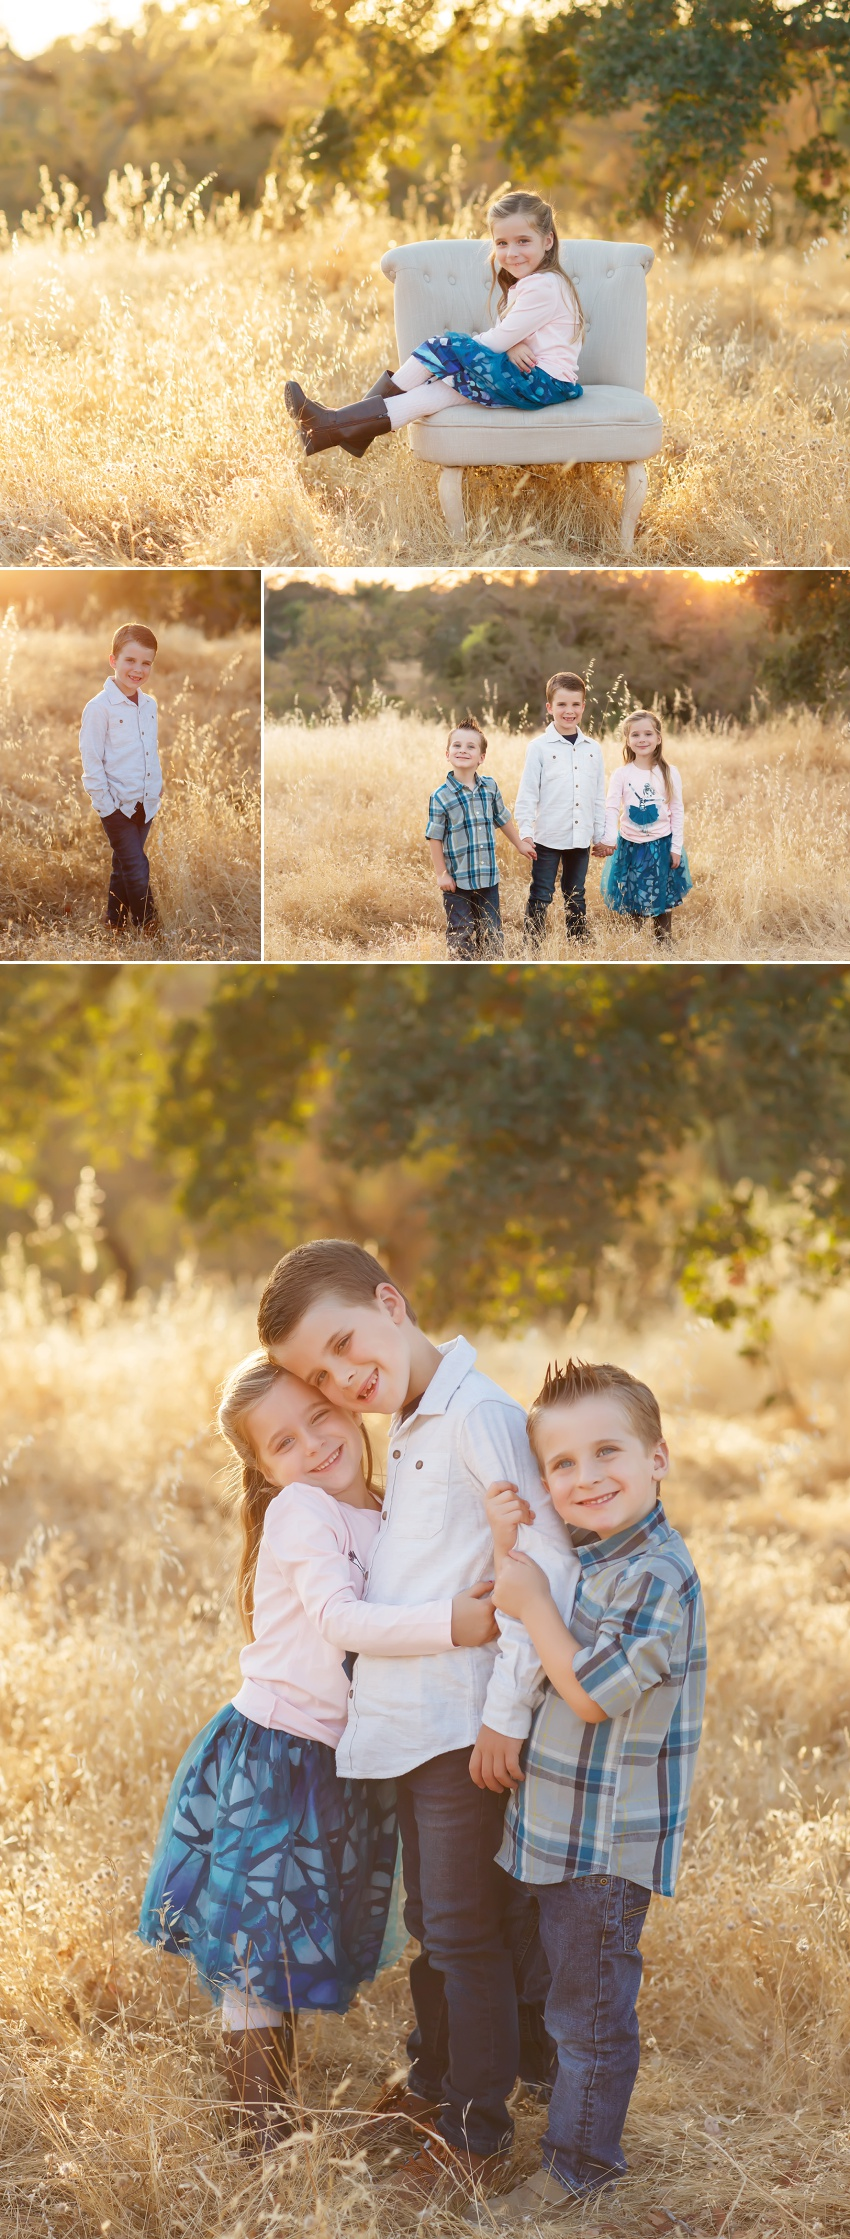 Fall family pictures in Folsom with El Dorado Hills photographer Colleen Sanders grasses oak trees golden light kids family fall mini sessions.